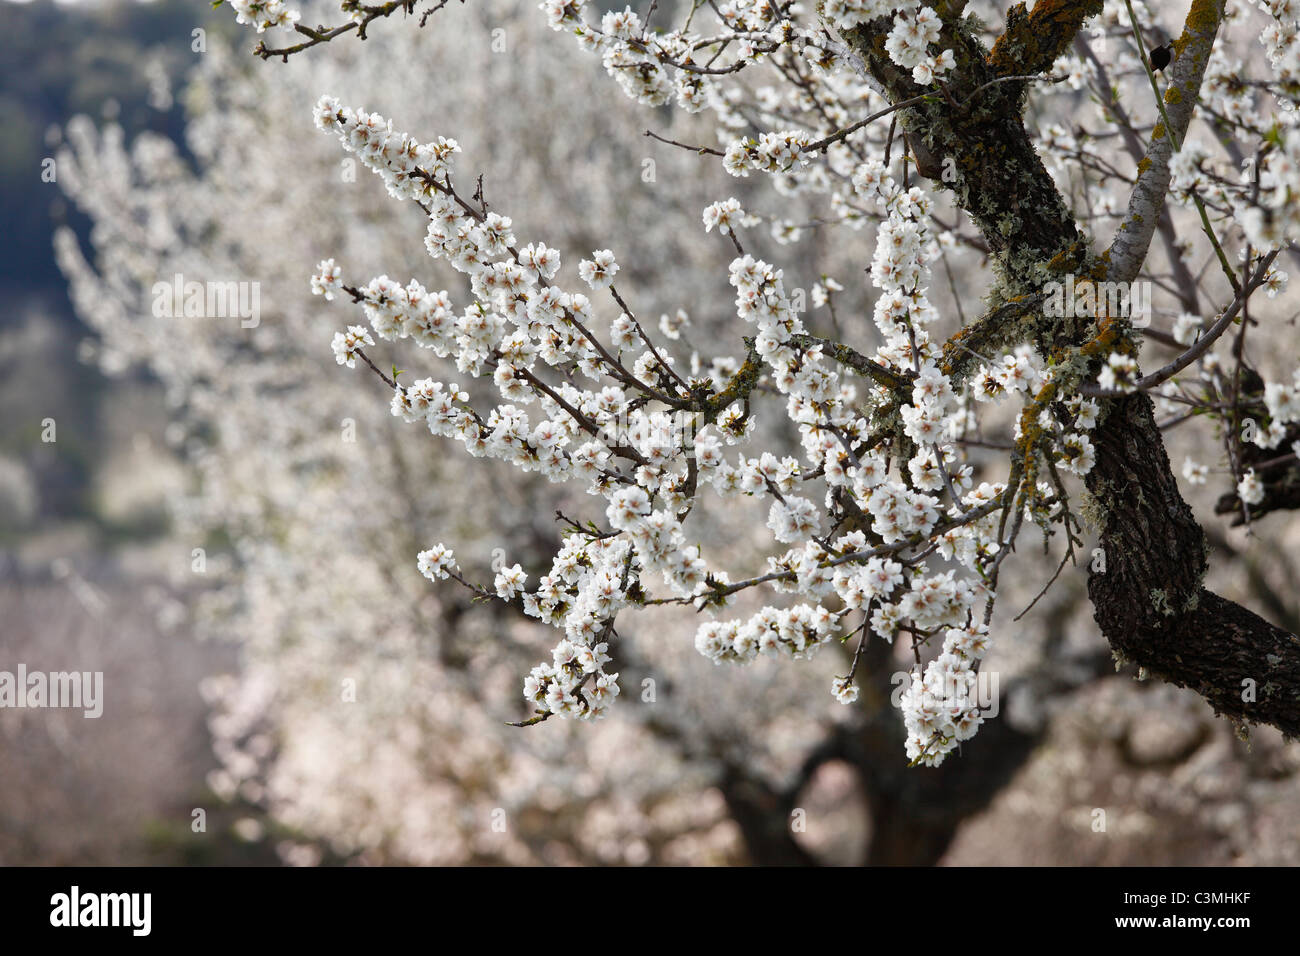 Spain, Balearic Islands, Majorca, View of blooming almond trees - Stock Image